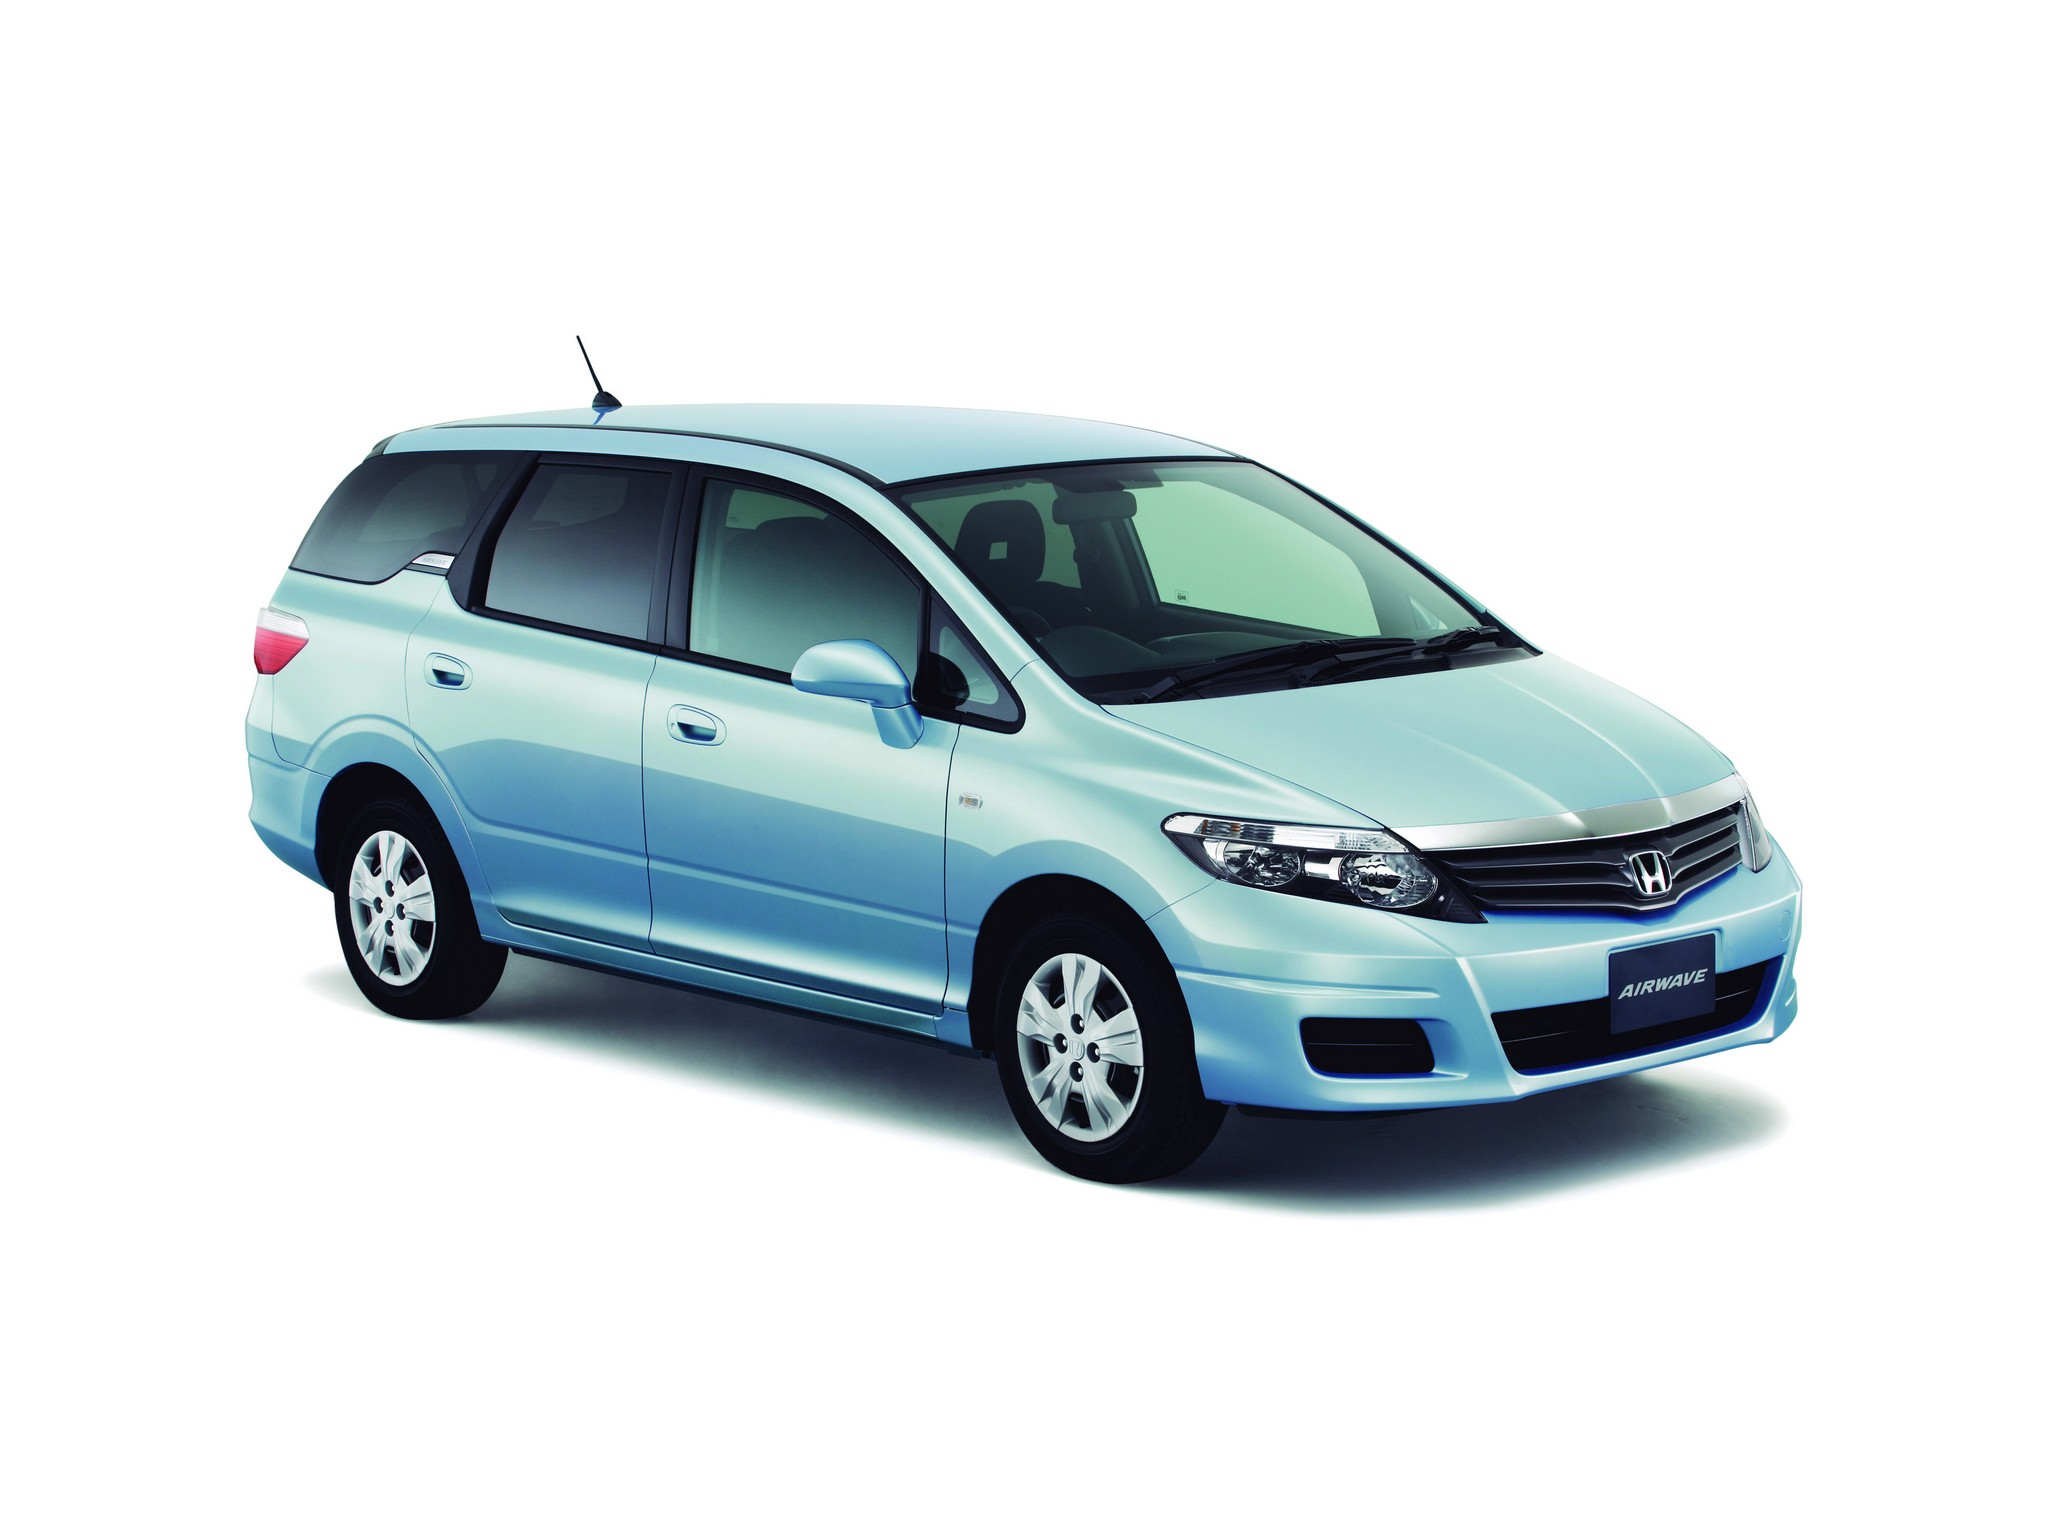 Honda Airwave 2008 - 2010 Station wagon 5 door #5